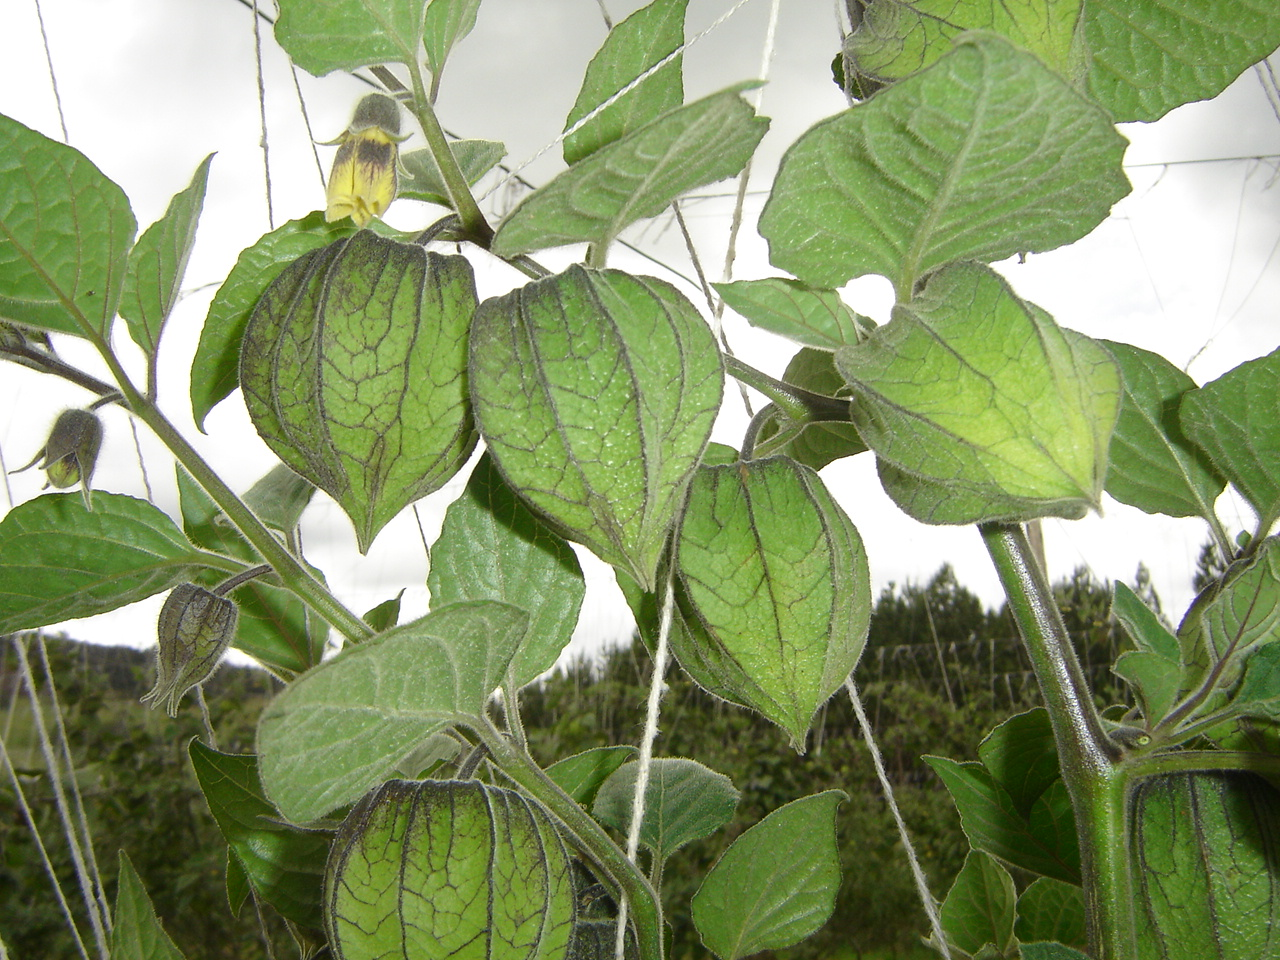 Cape gooseberry plant with flower buds, flowers and developing fruits in calyx.  Photo: G. Fischer